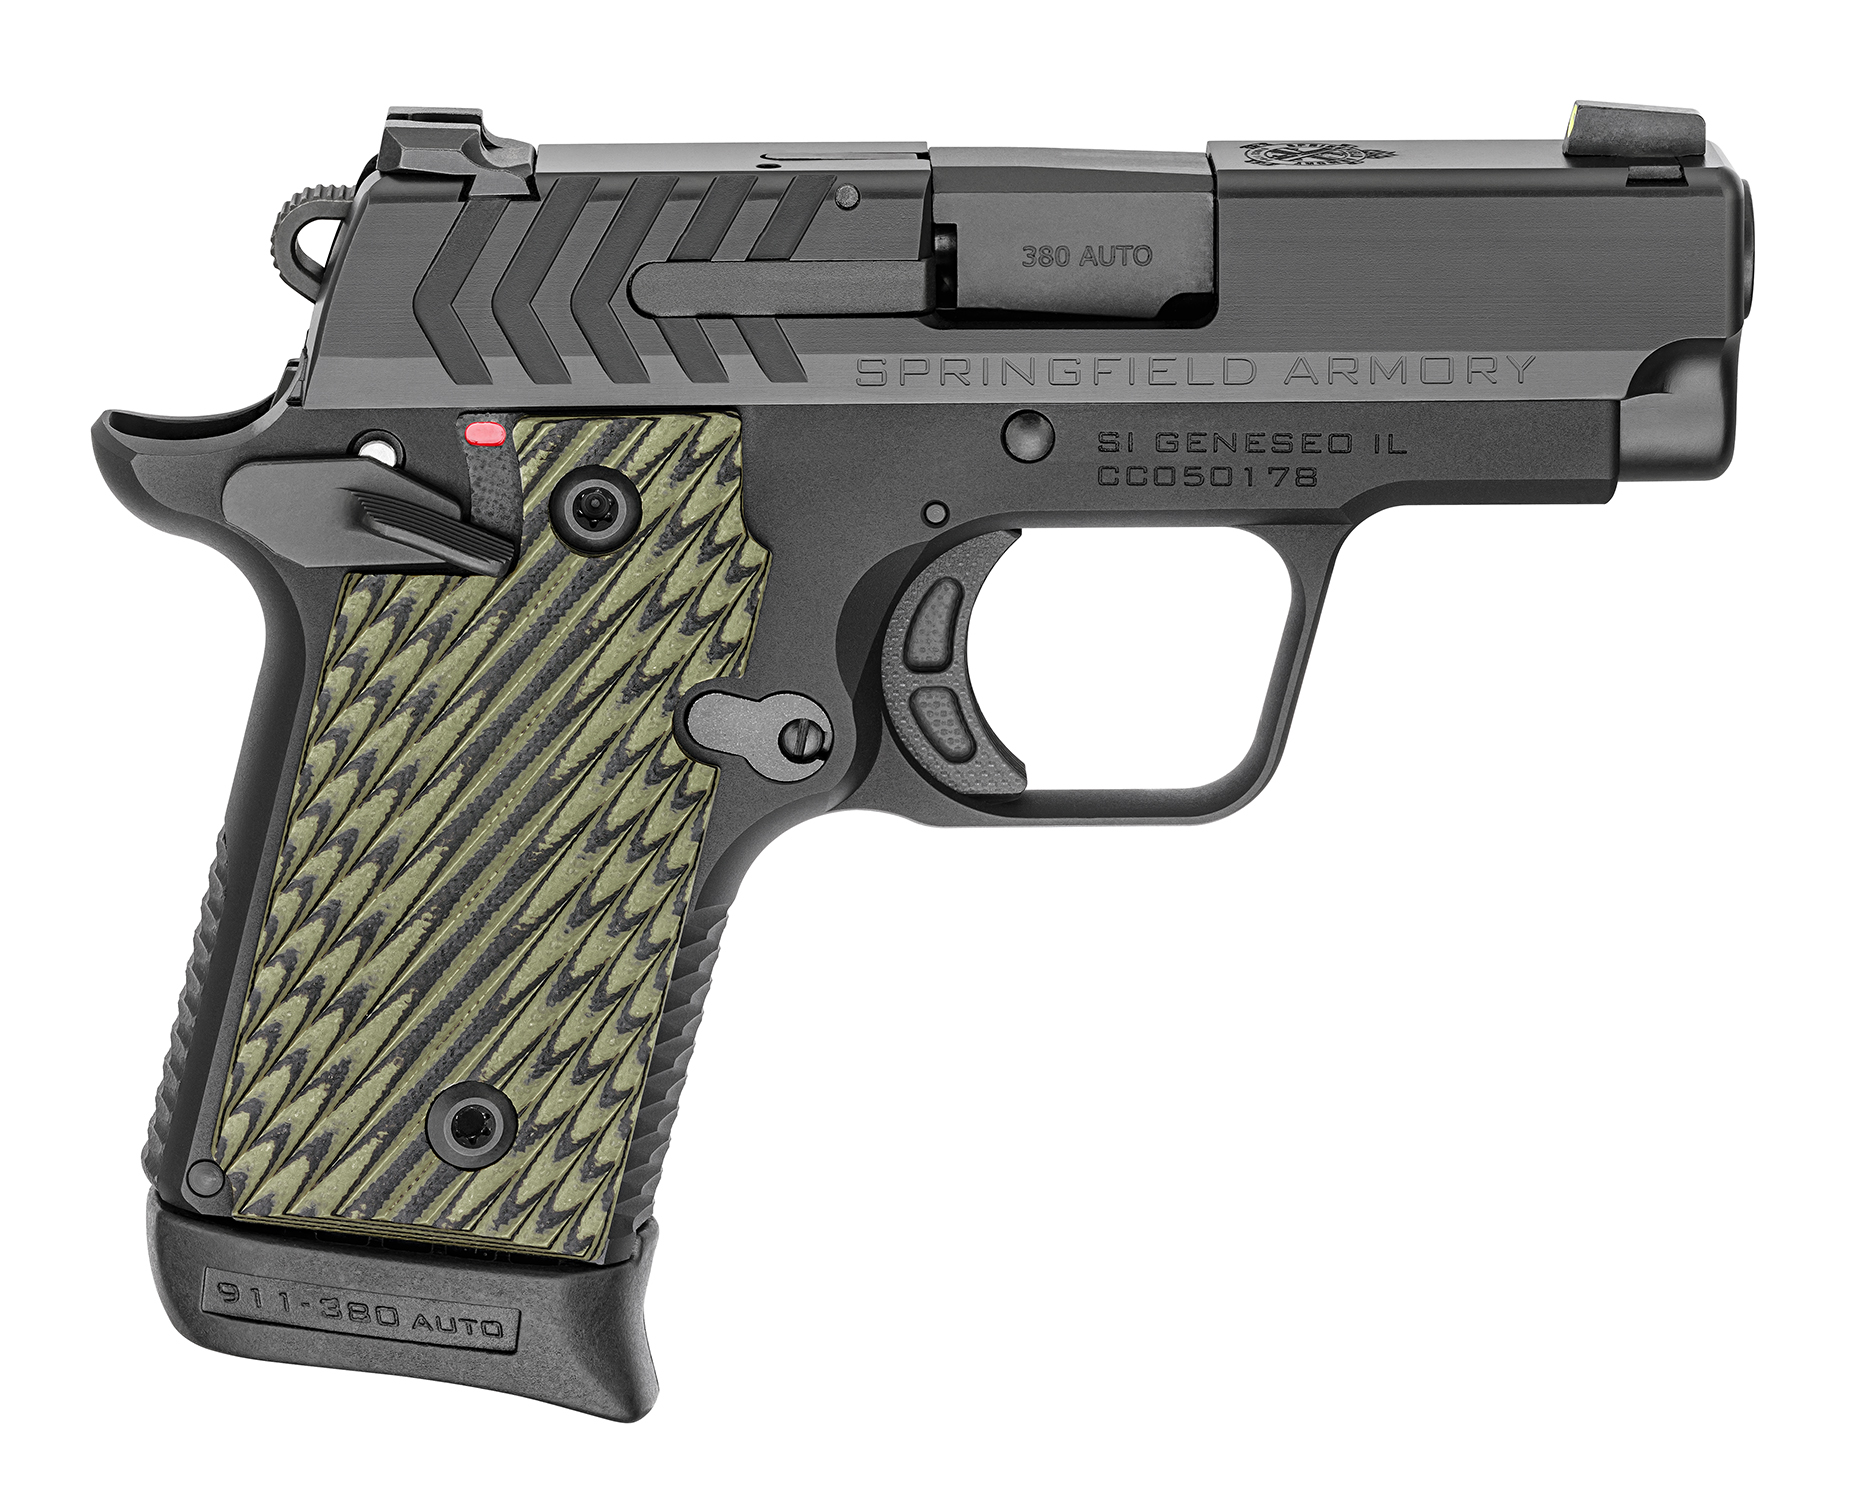 Springfield 911 with G10 Grips and Black Nitride finish